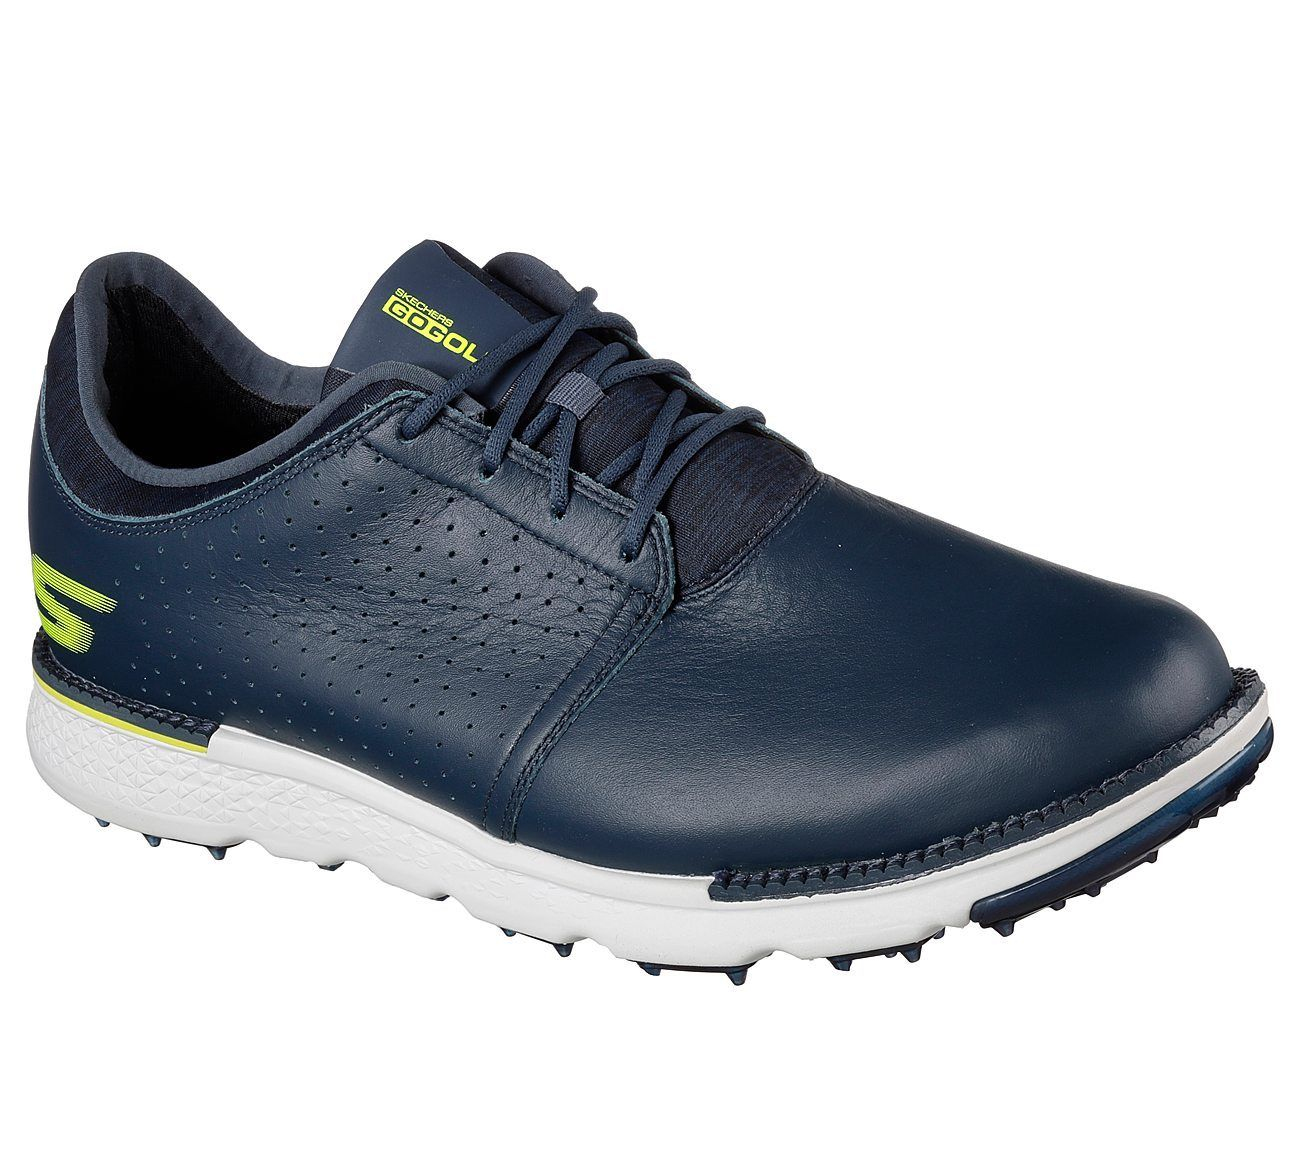 SKECHERS GO GOLF ELITE V.3 - APPROACH LT-RF MENS WATERPROOF GOLF SHOES